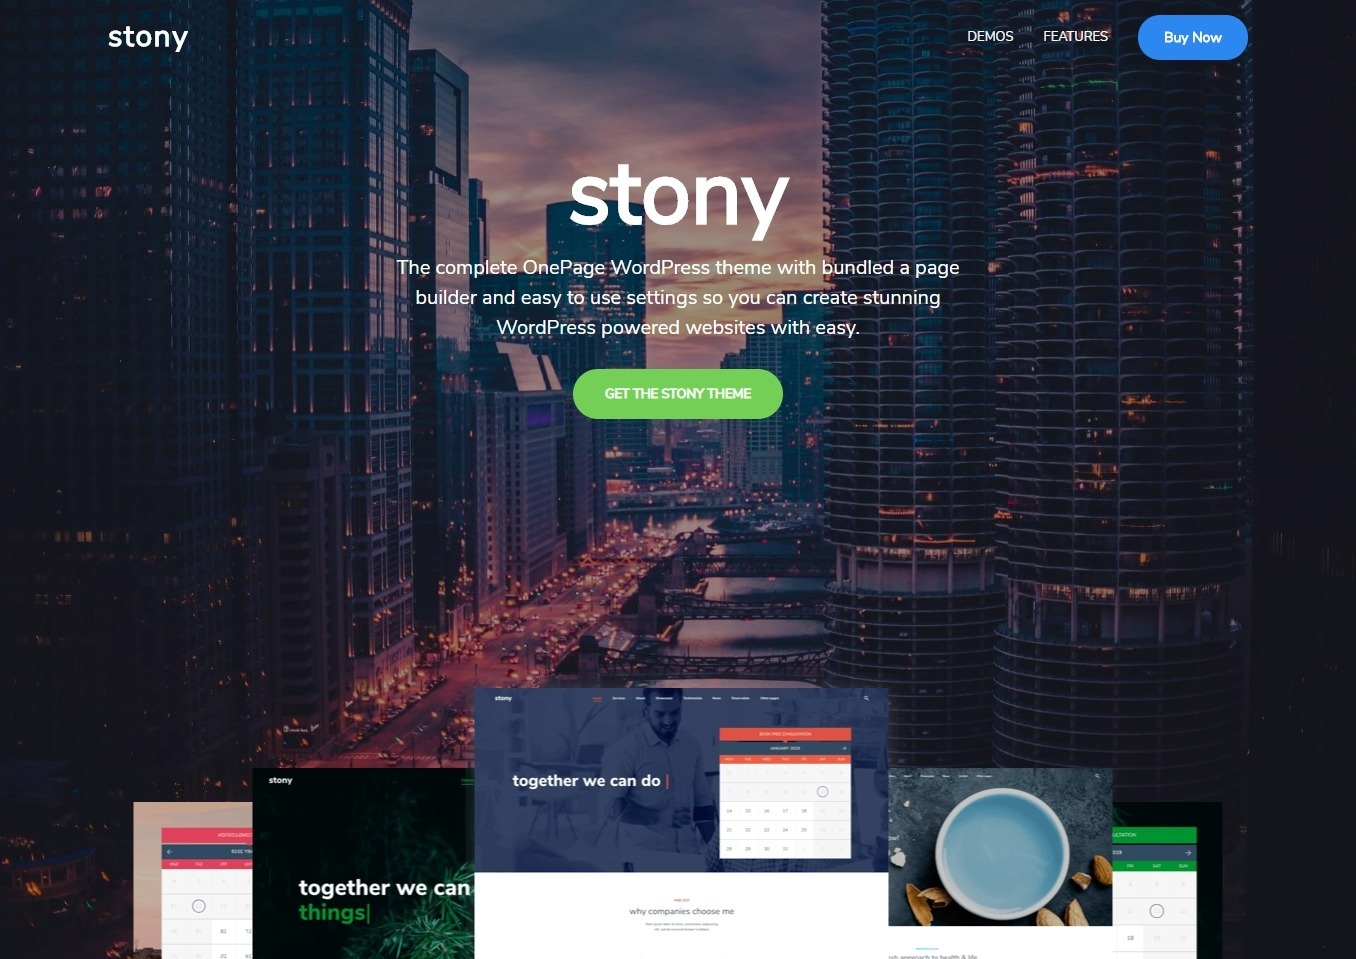 Stony One Page Theme with Drag and Drop Page Builder